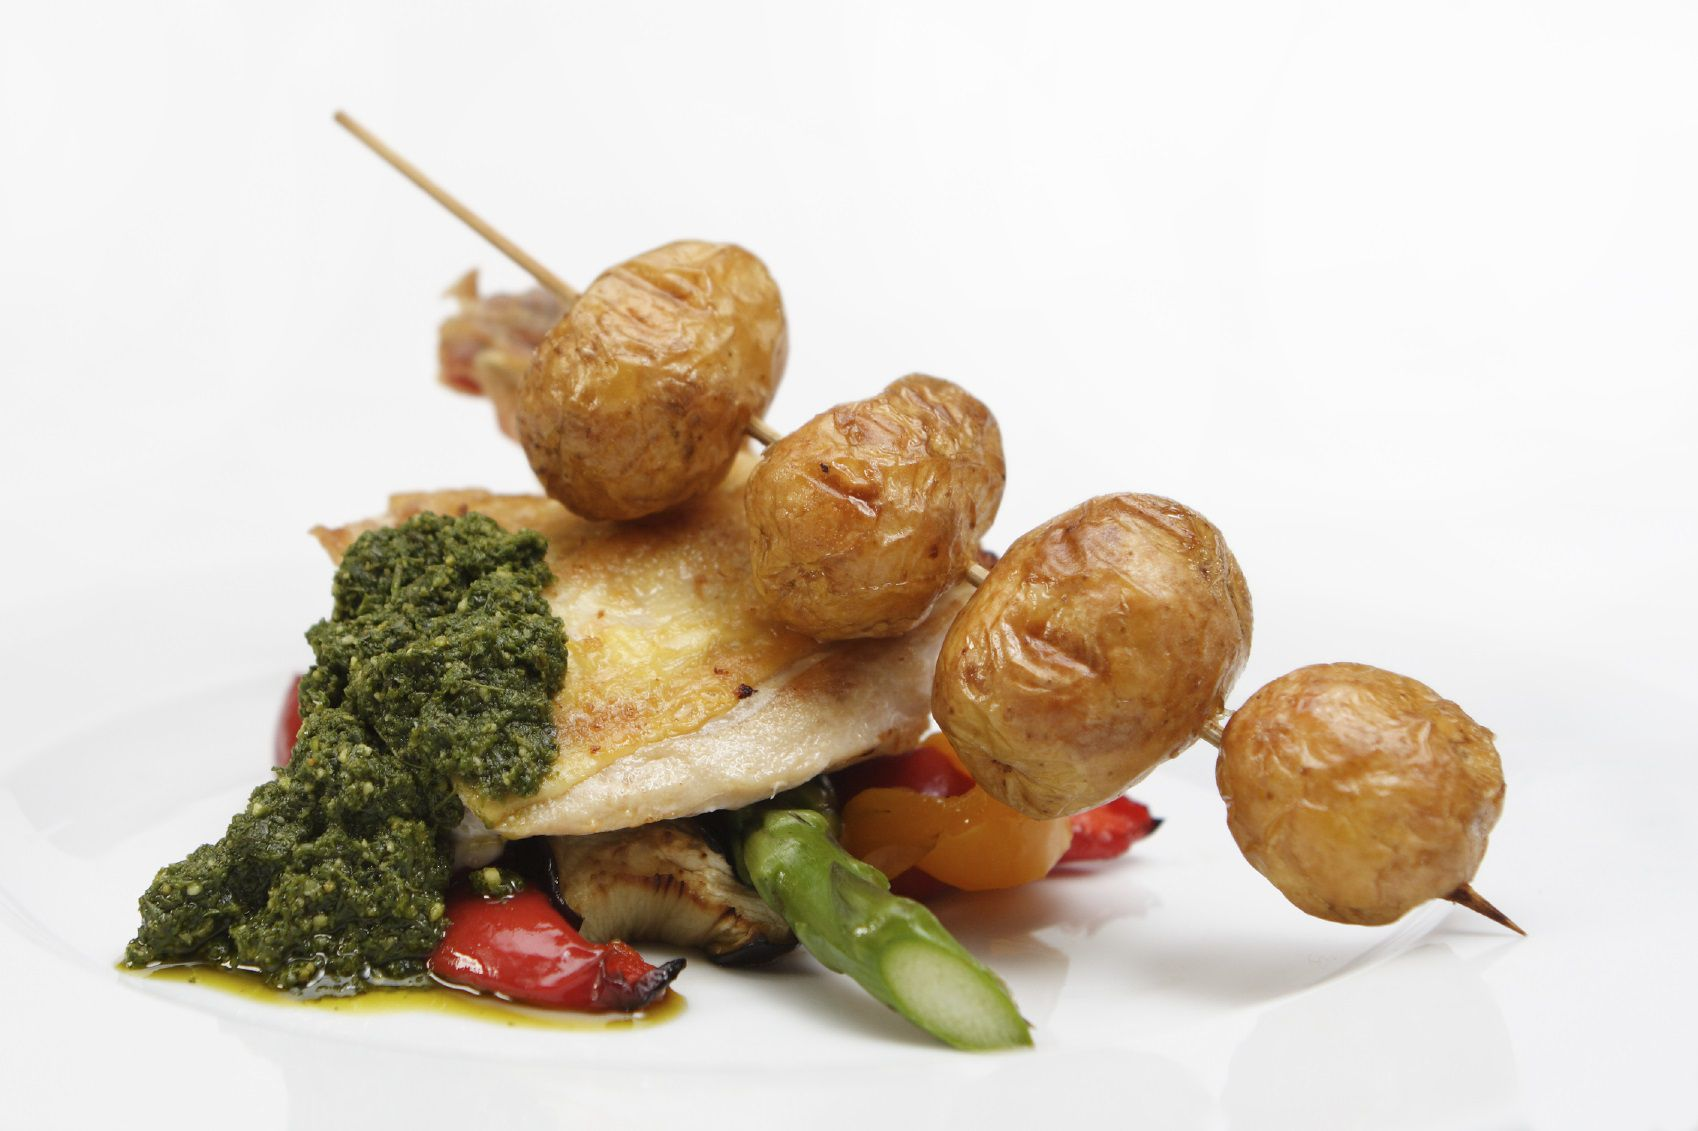 Chicken, vegetables, and pesto